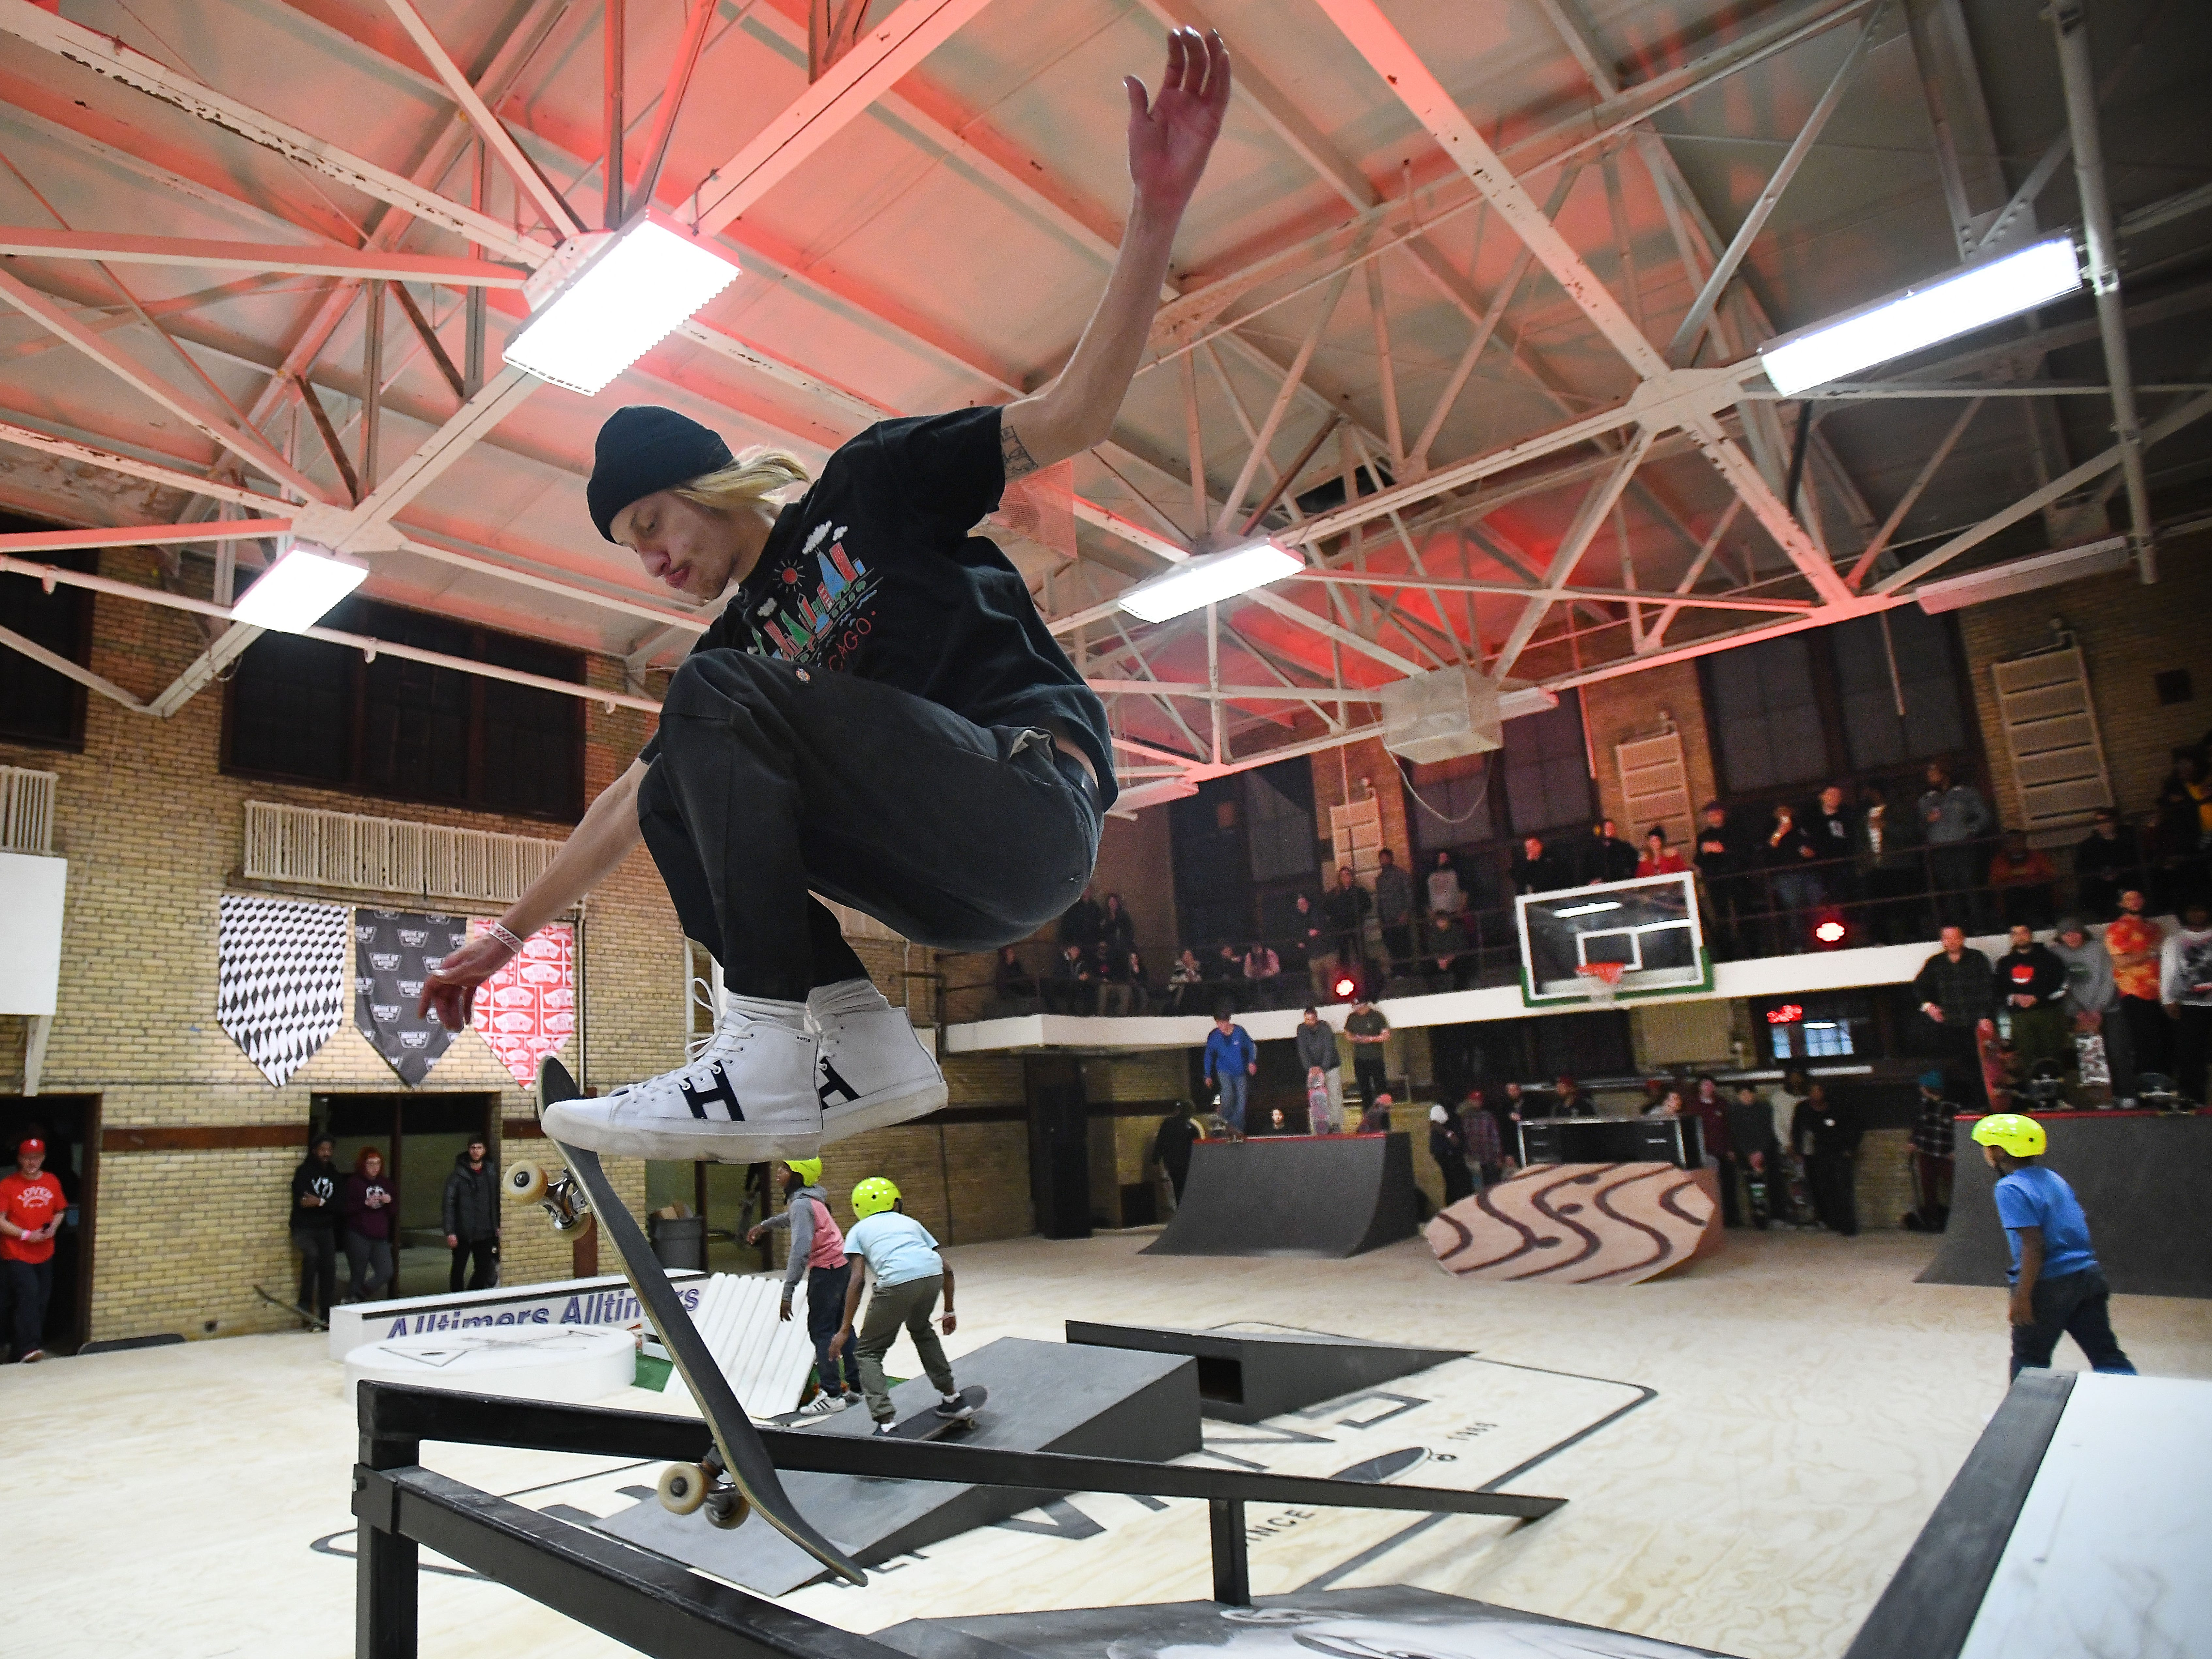 Jon Wiz of Detroit takes his board over the rail at a pop-up skate park.